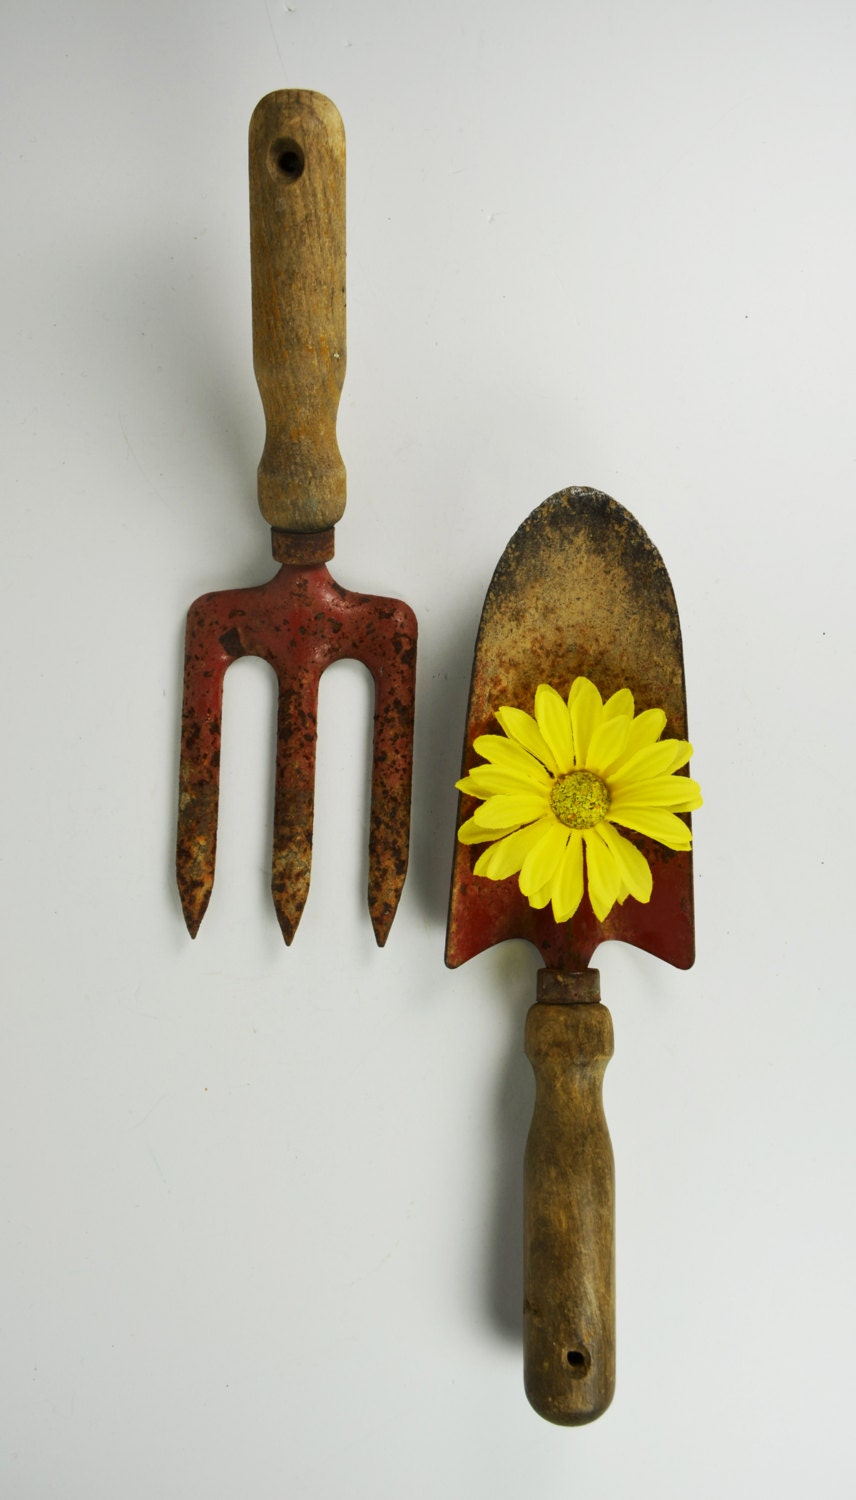 Vintage rusty wooden handle garden tools by for Gardening tools vintage